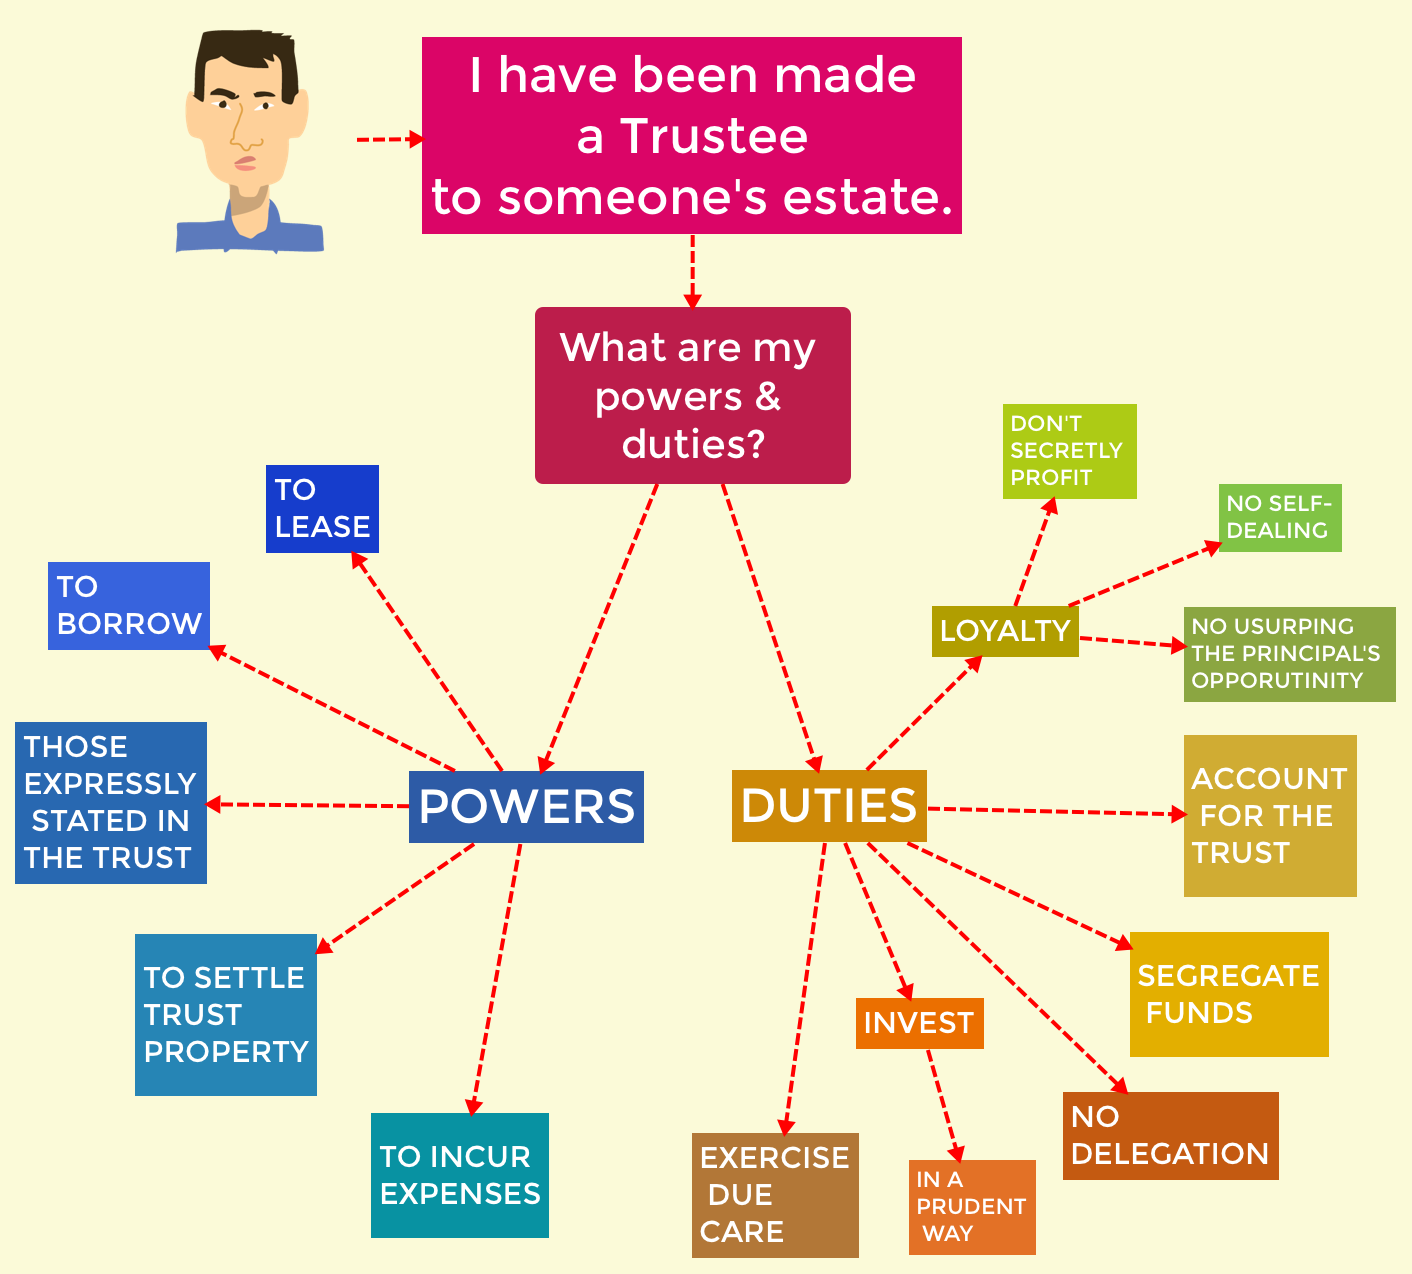 Estate law flowchart trustees powers duties visual law library estate law flowchart my powers and duties as a trustee nvjuhfo Gallery